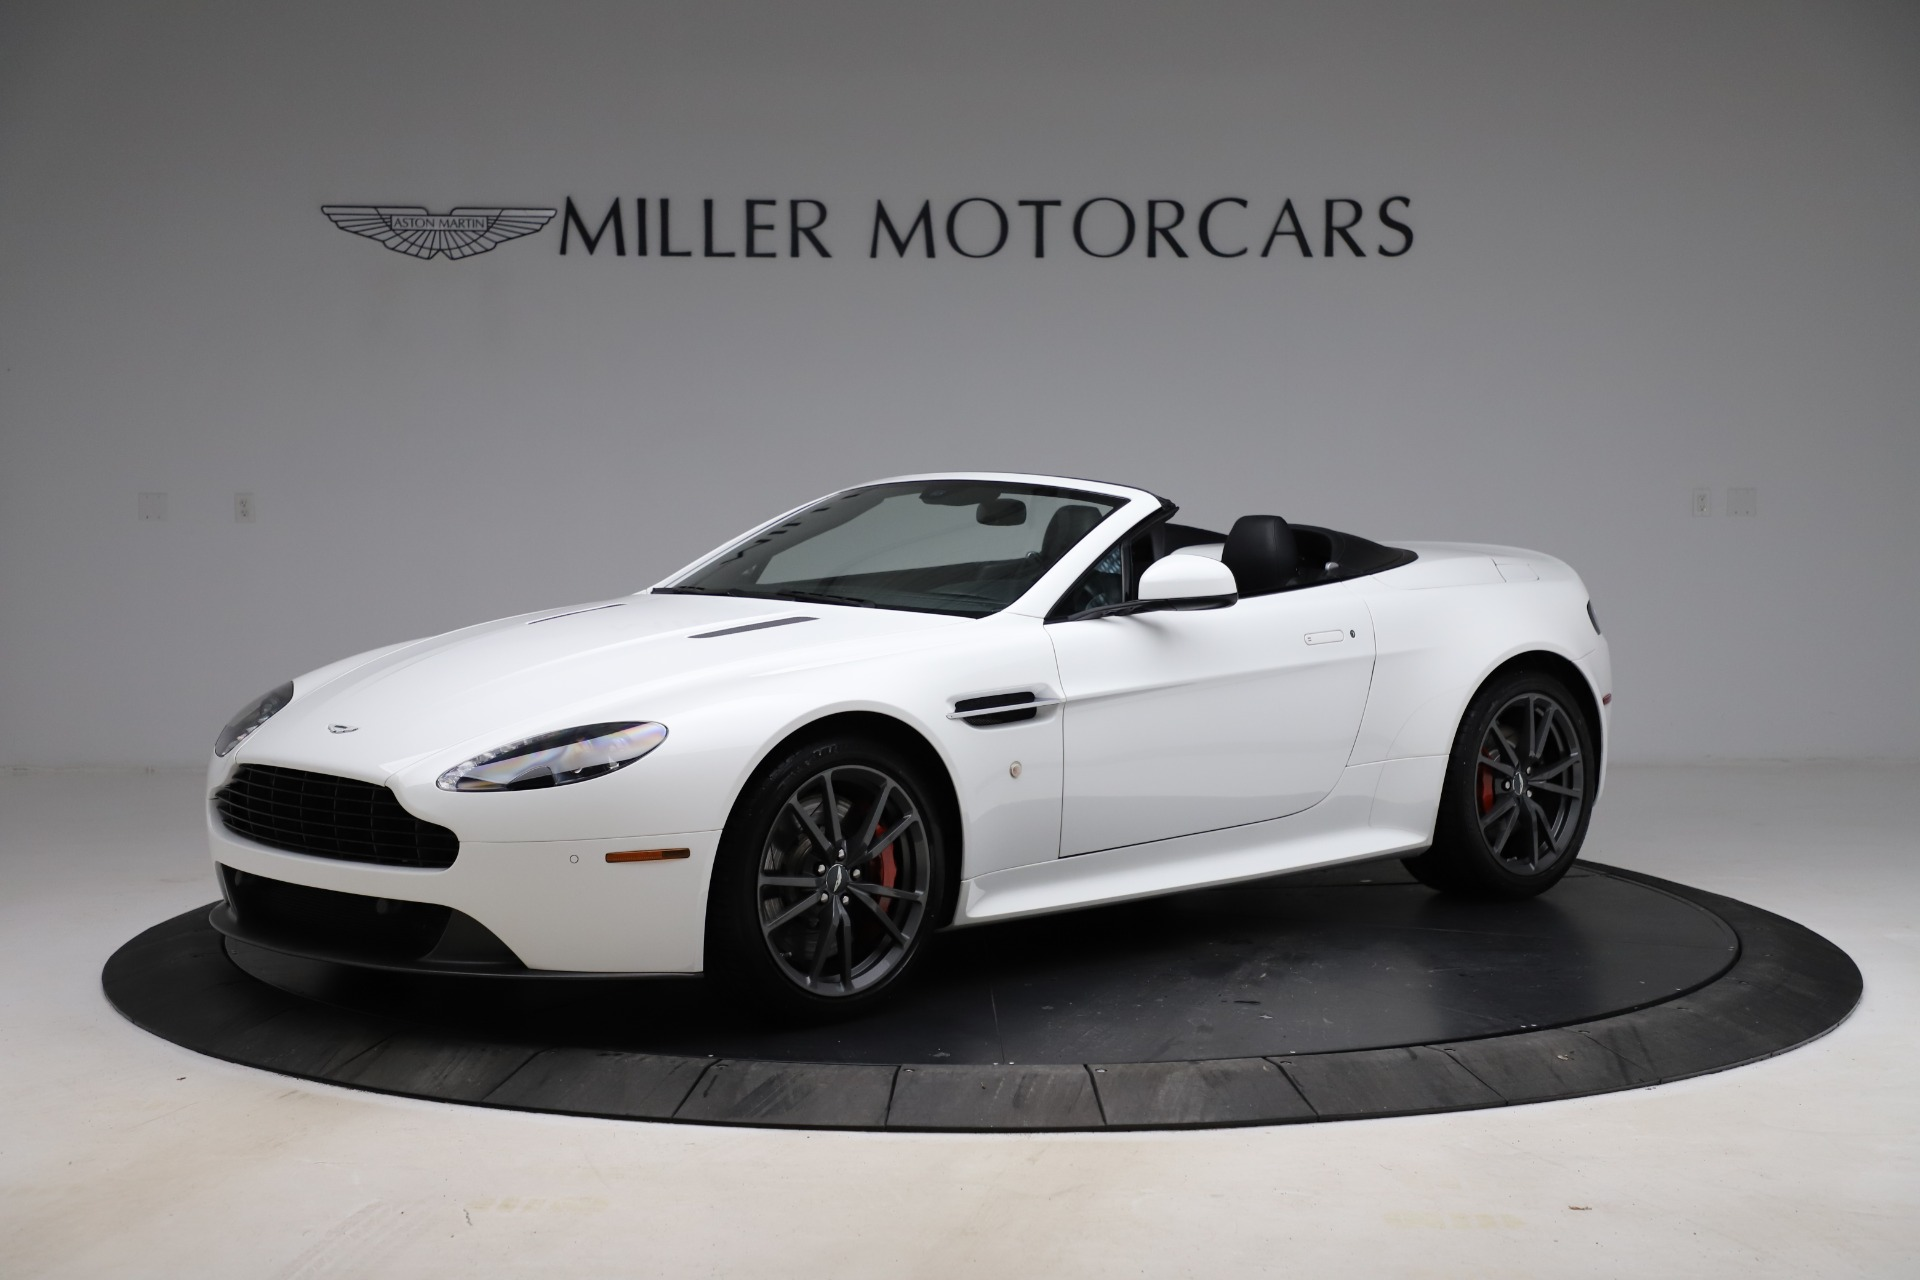 New 2015 Aston Martin Vantage GT GT Roadster for sale Sold at McLaren Greenwich in Greenwich CT 06830 1